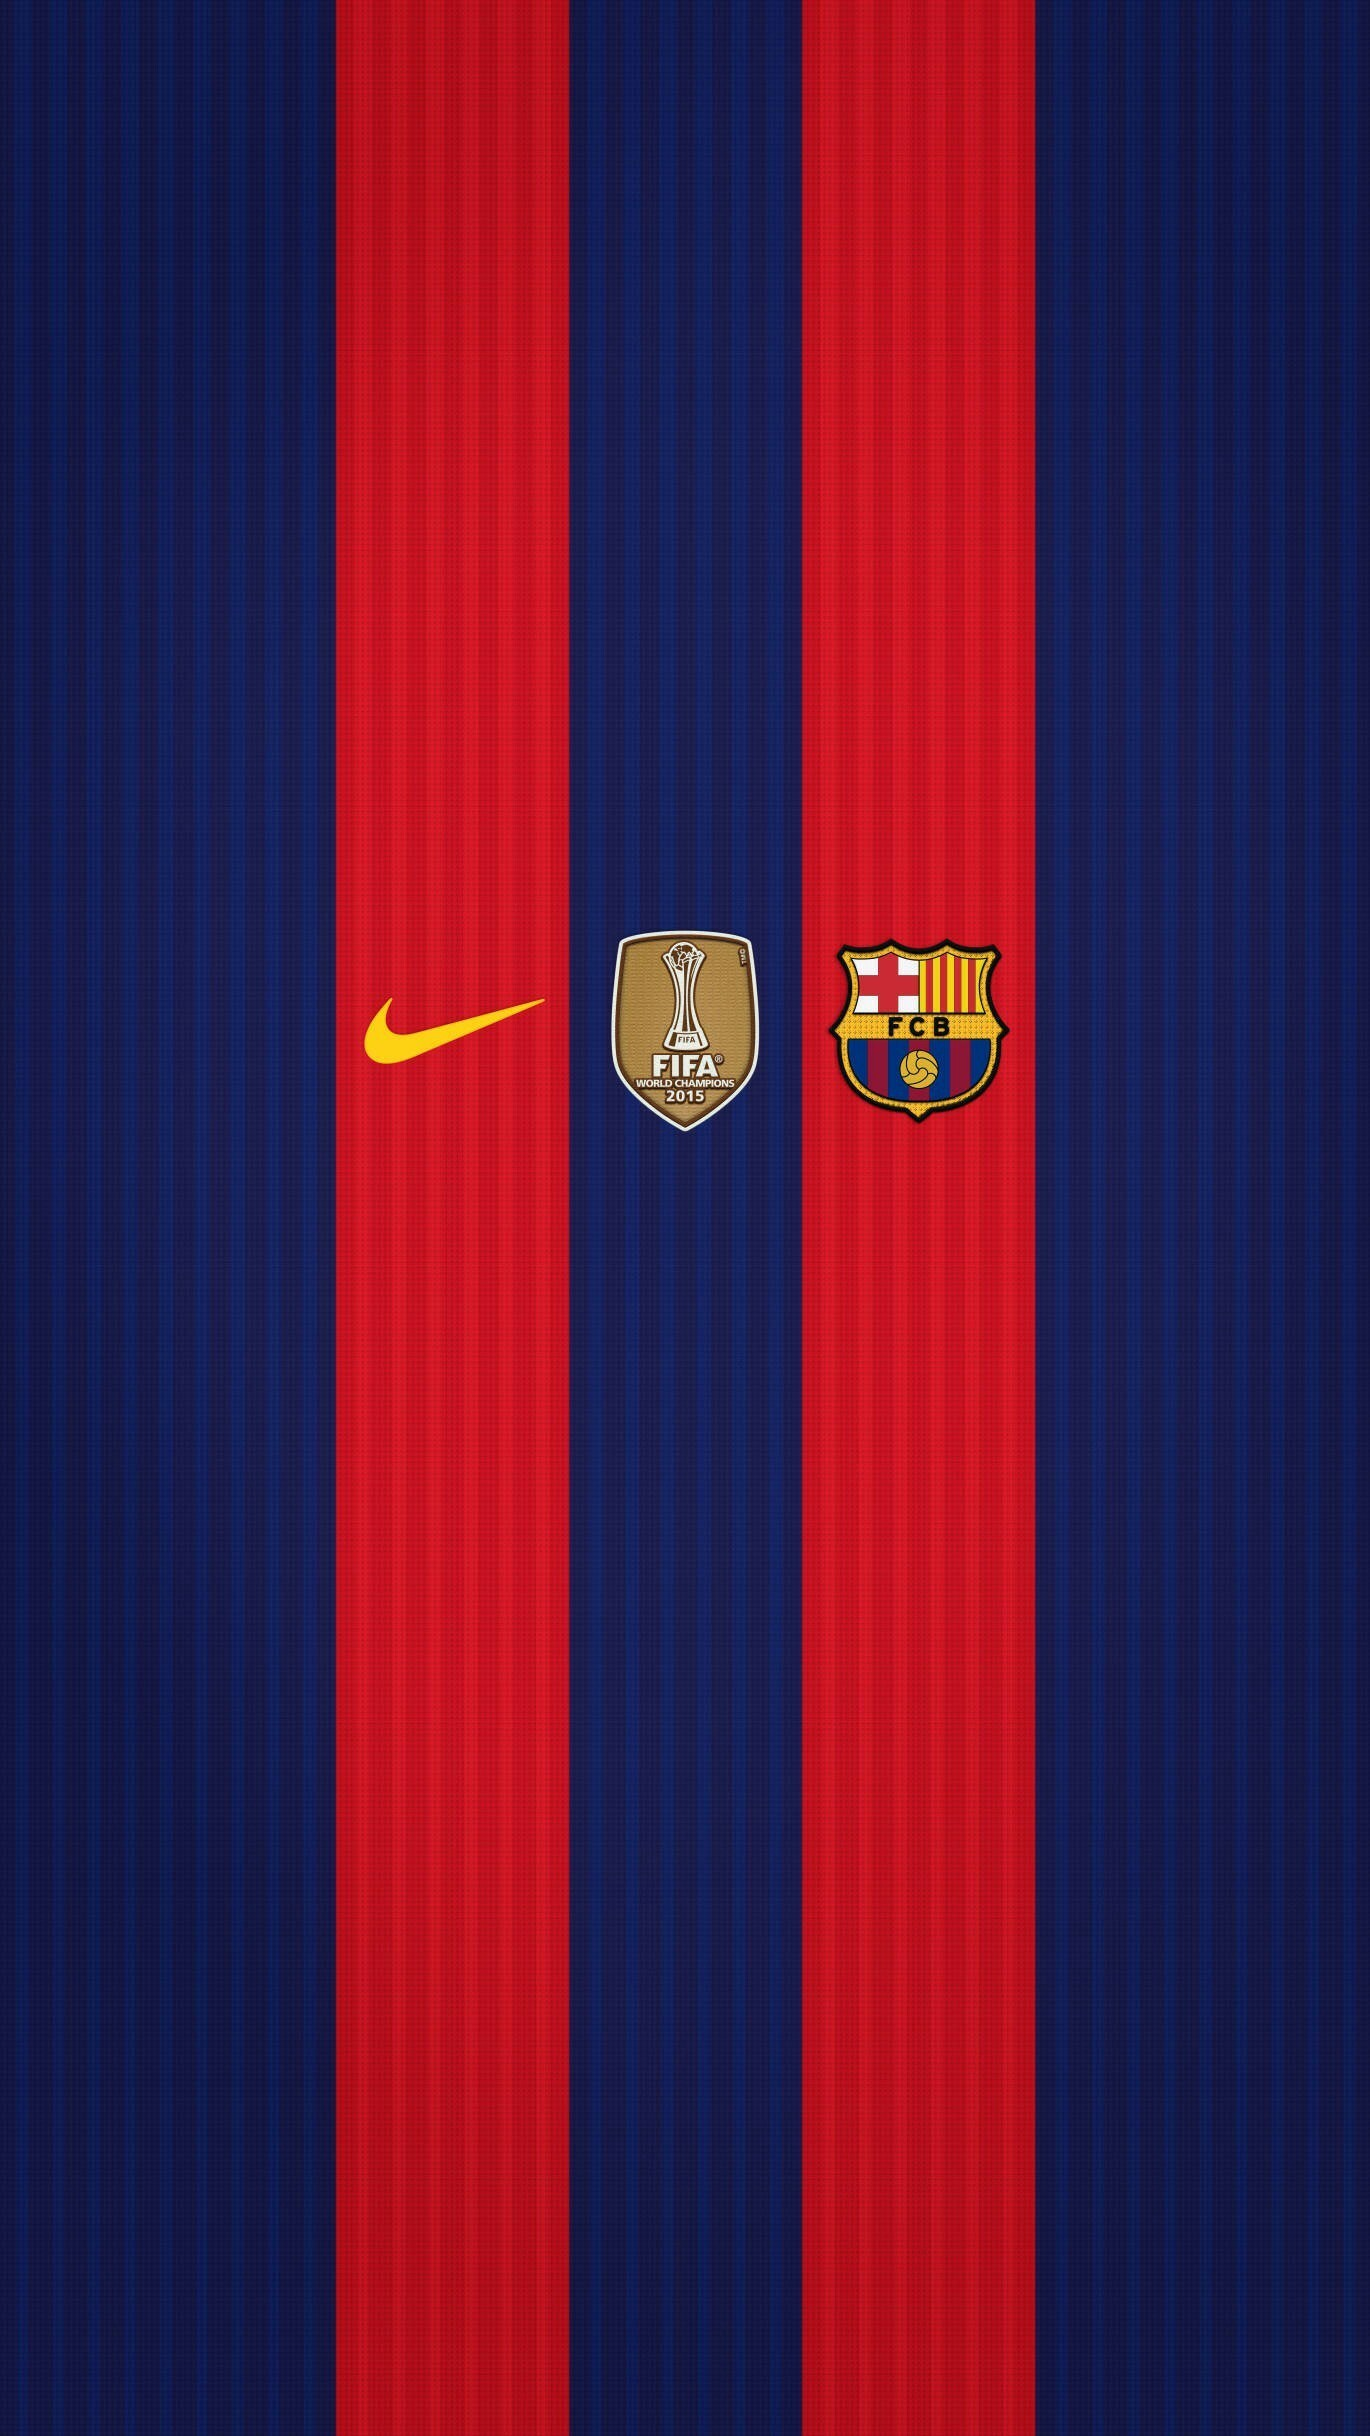 Fc Barcelona Wallpaper Iphone 5 Posted By Ethan Anderson